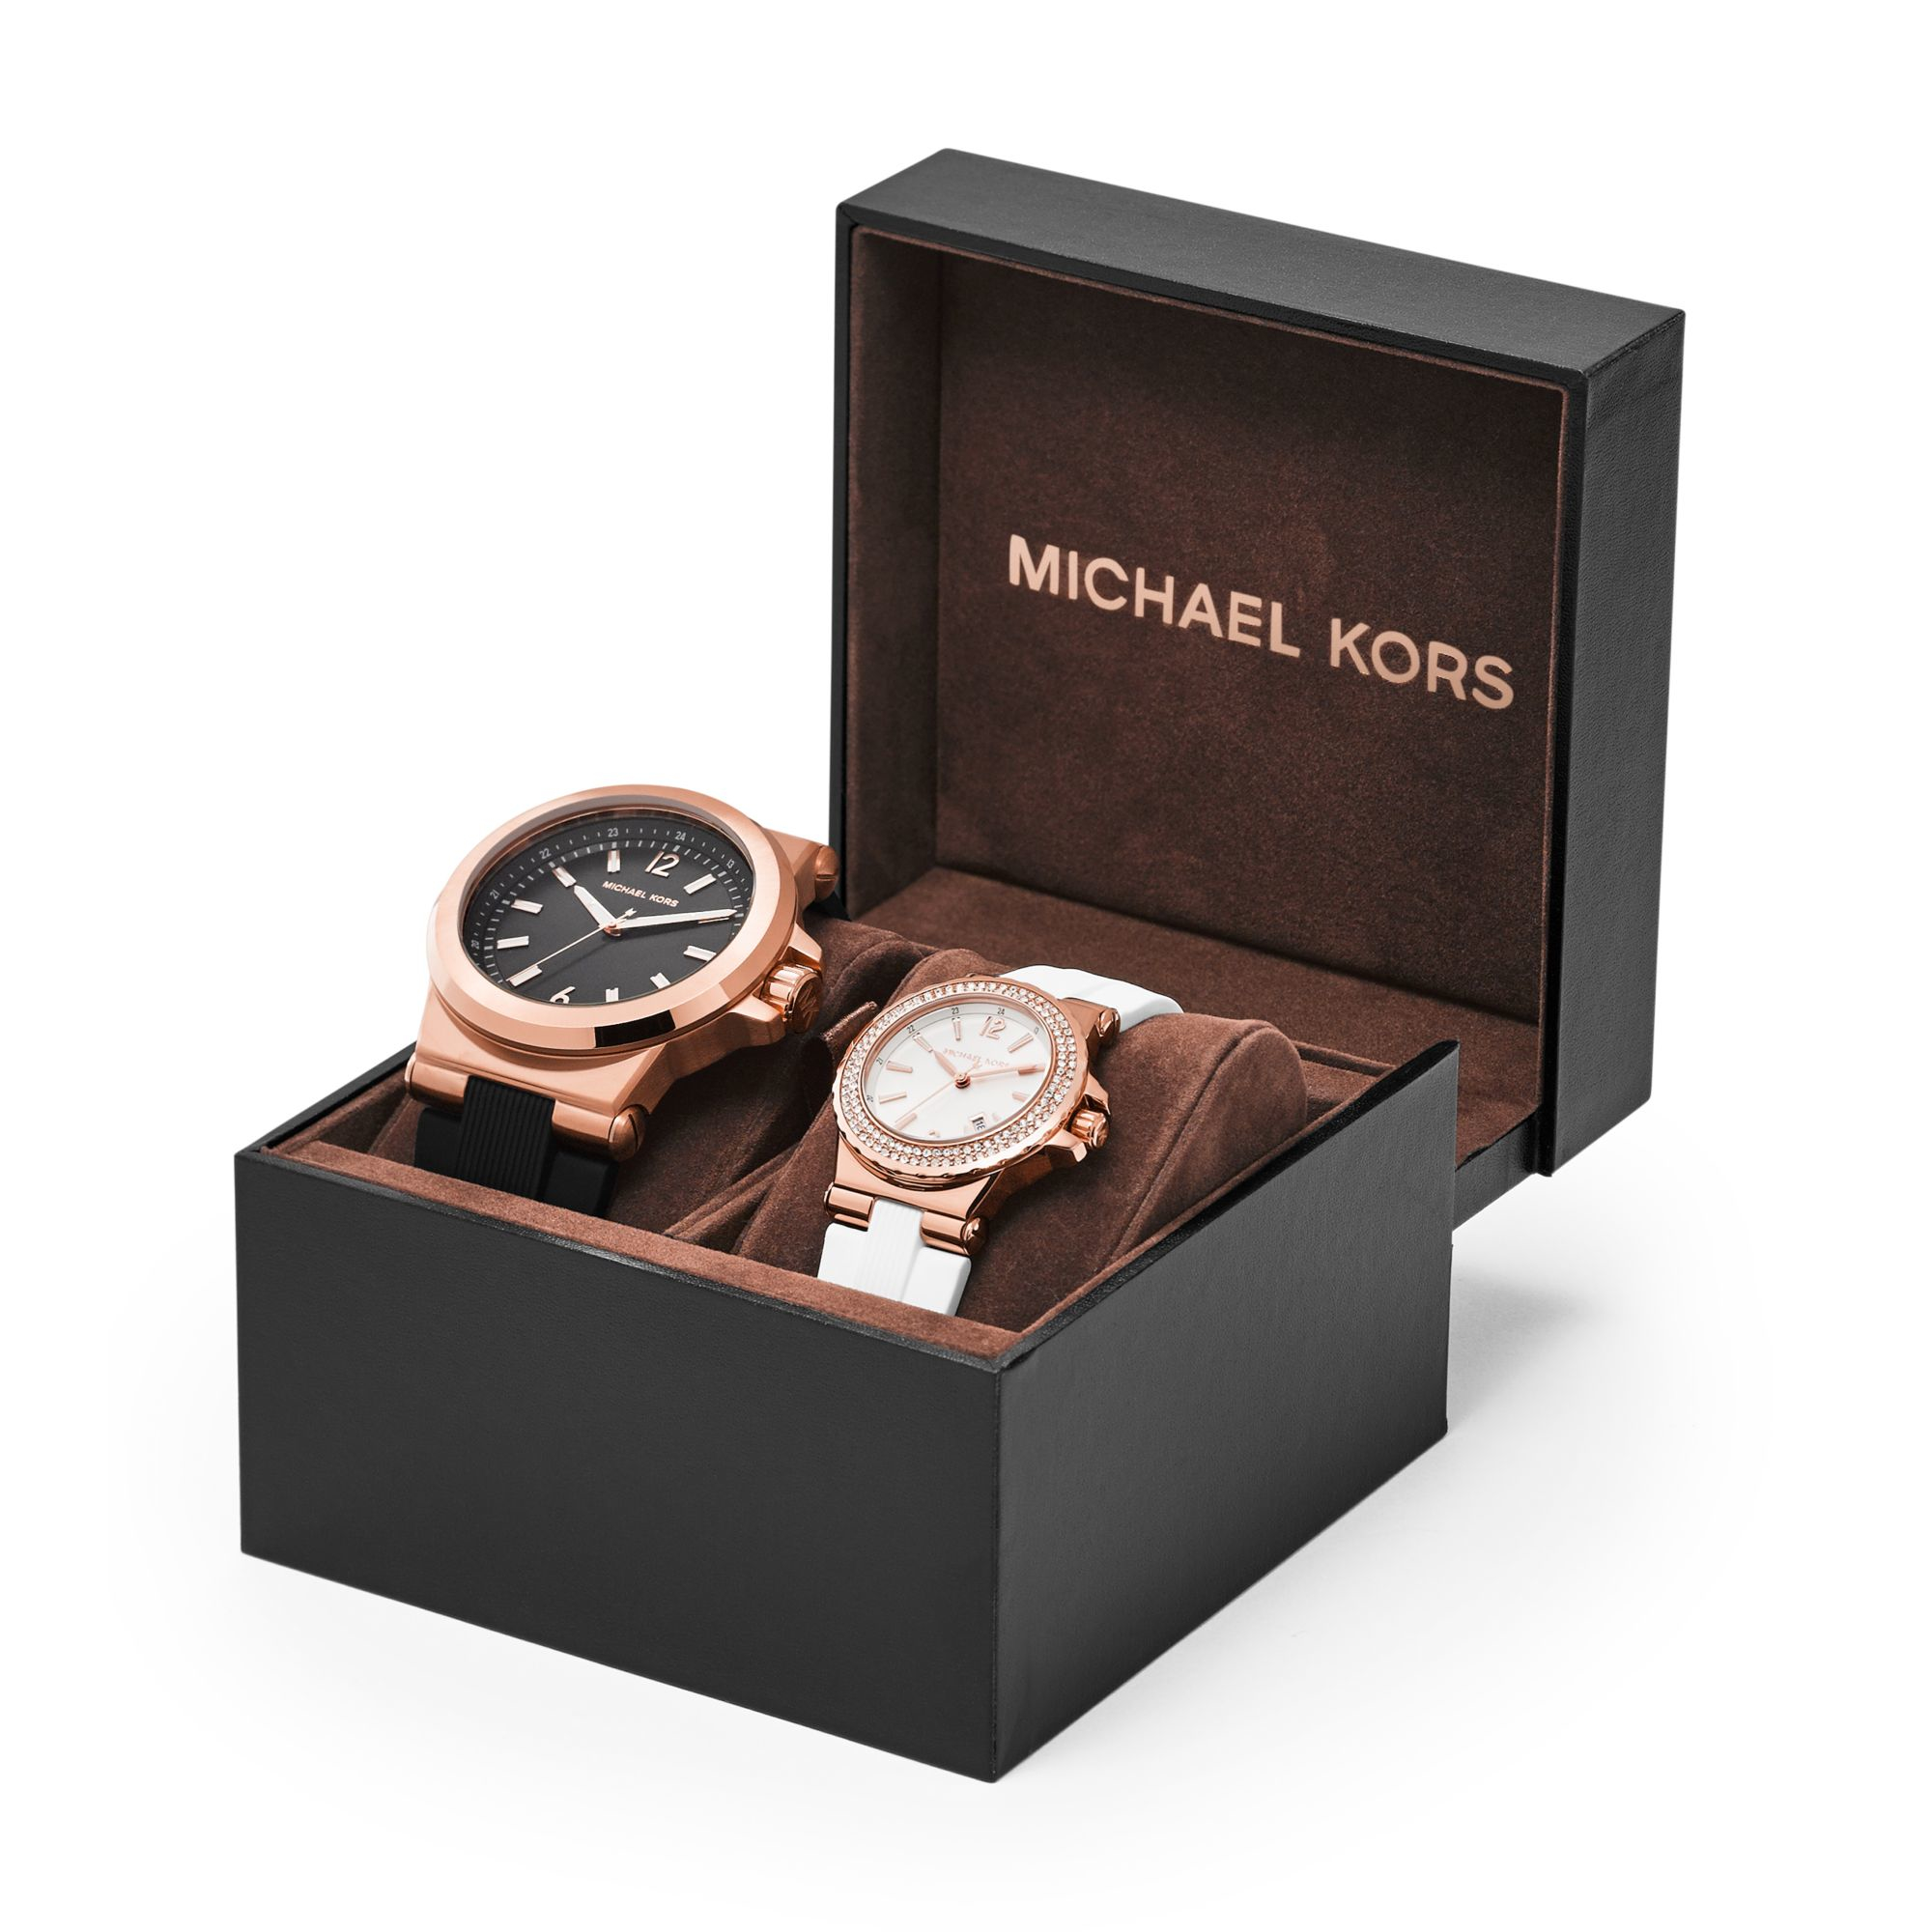 Michael kors Dylan Rose Gold-tone And Silicone Watch Gift Set in ...